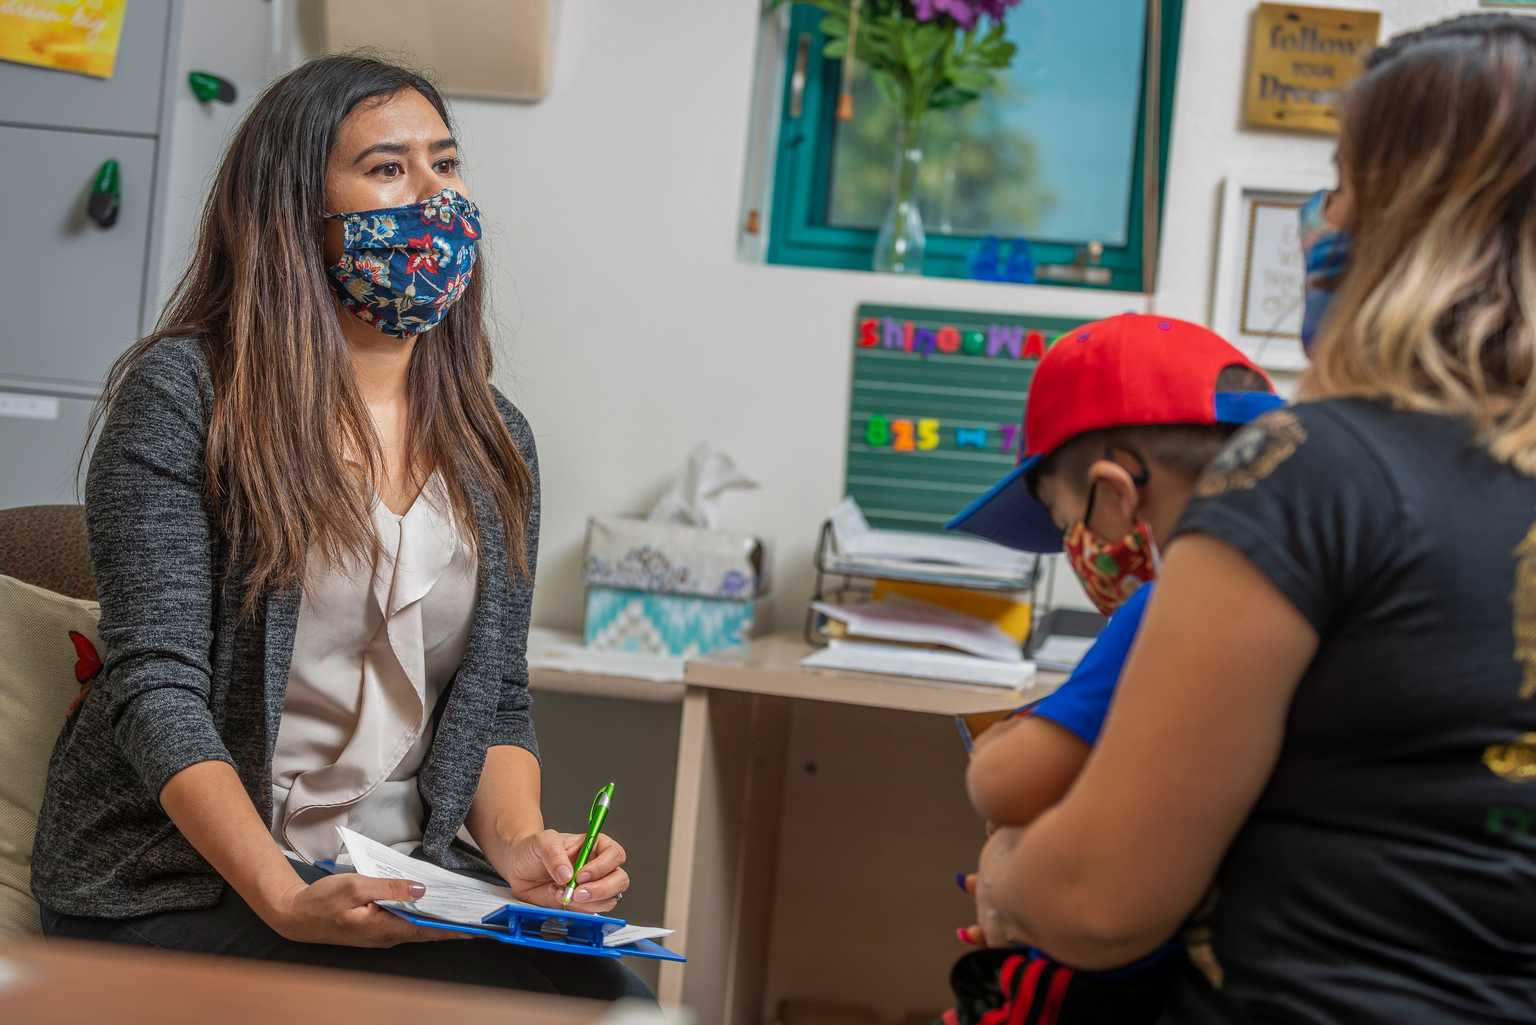 Women and Children's Center of the Sierra was awarded a grant from the COVID-19 Relief fund supported by the Community Endowment.